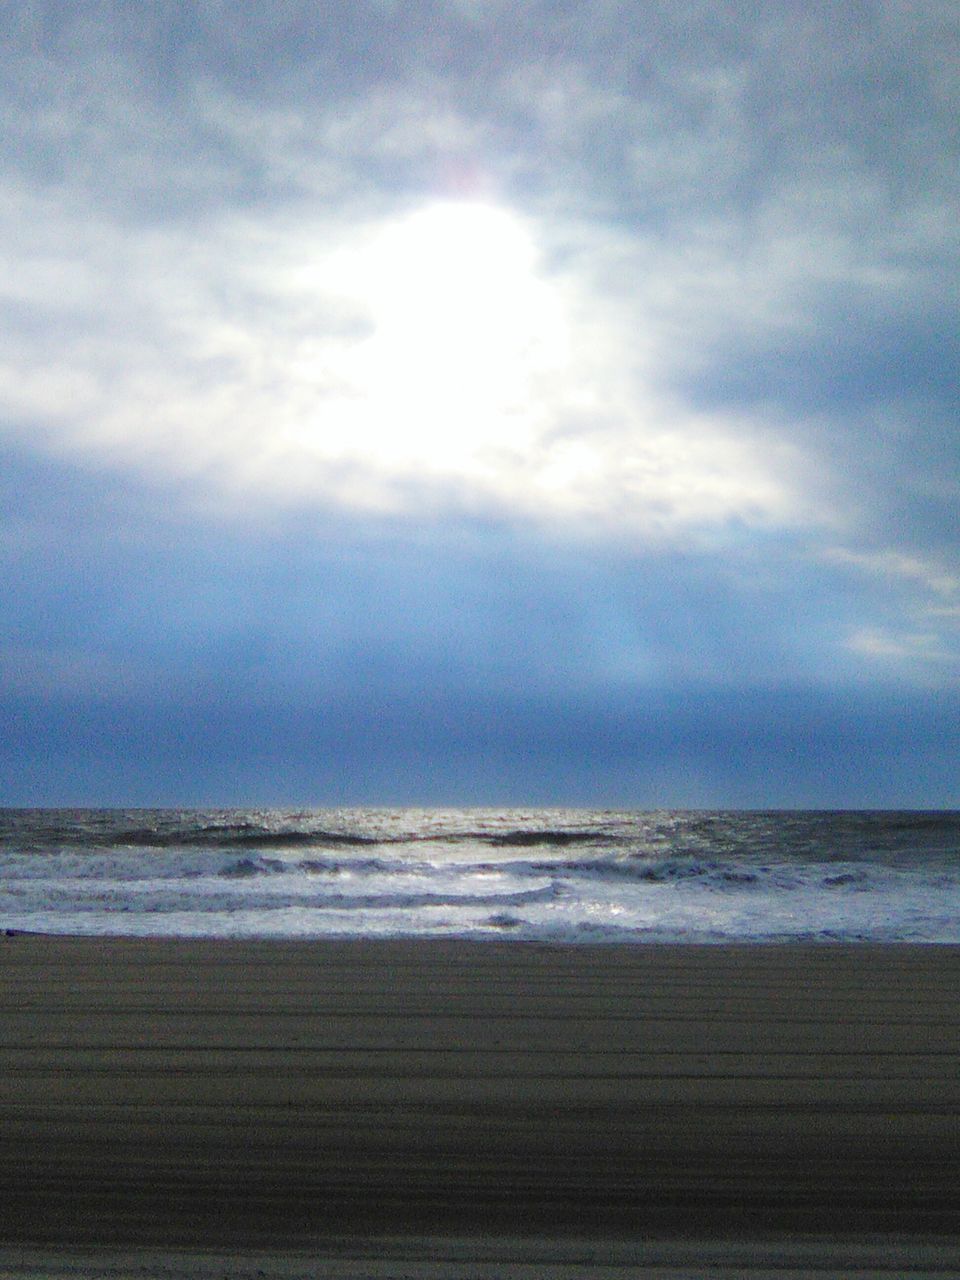 sea, sky, nature, cloud - sky, tranquility, beauty in nature, scenics, horizon over water, beach, tranquil scene, no people, water, outdoors, day, wave, scenery